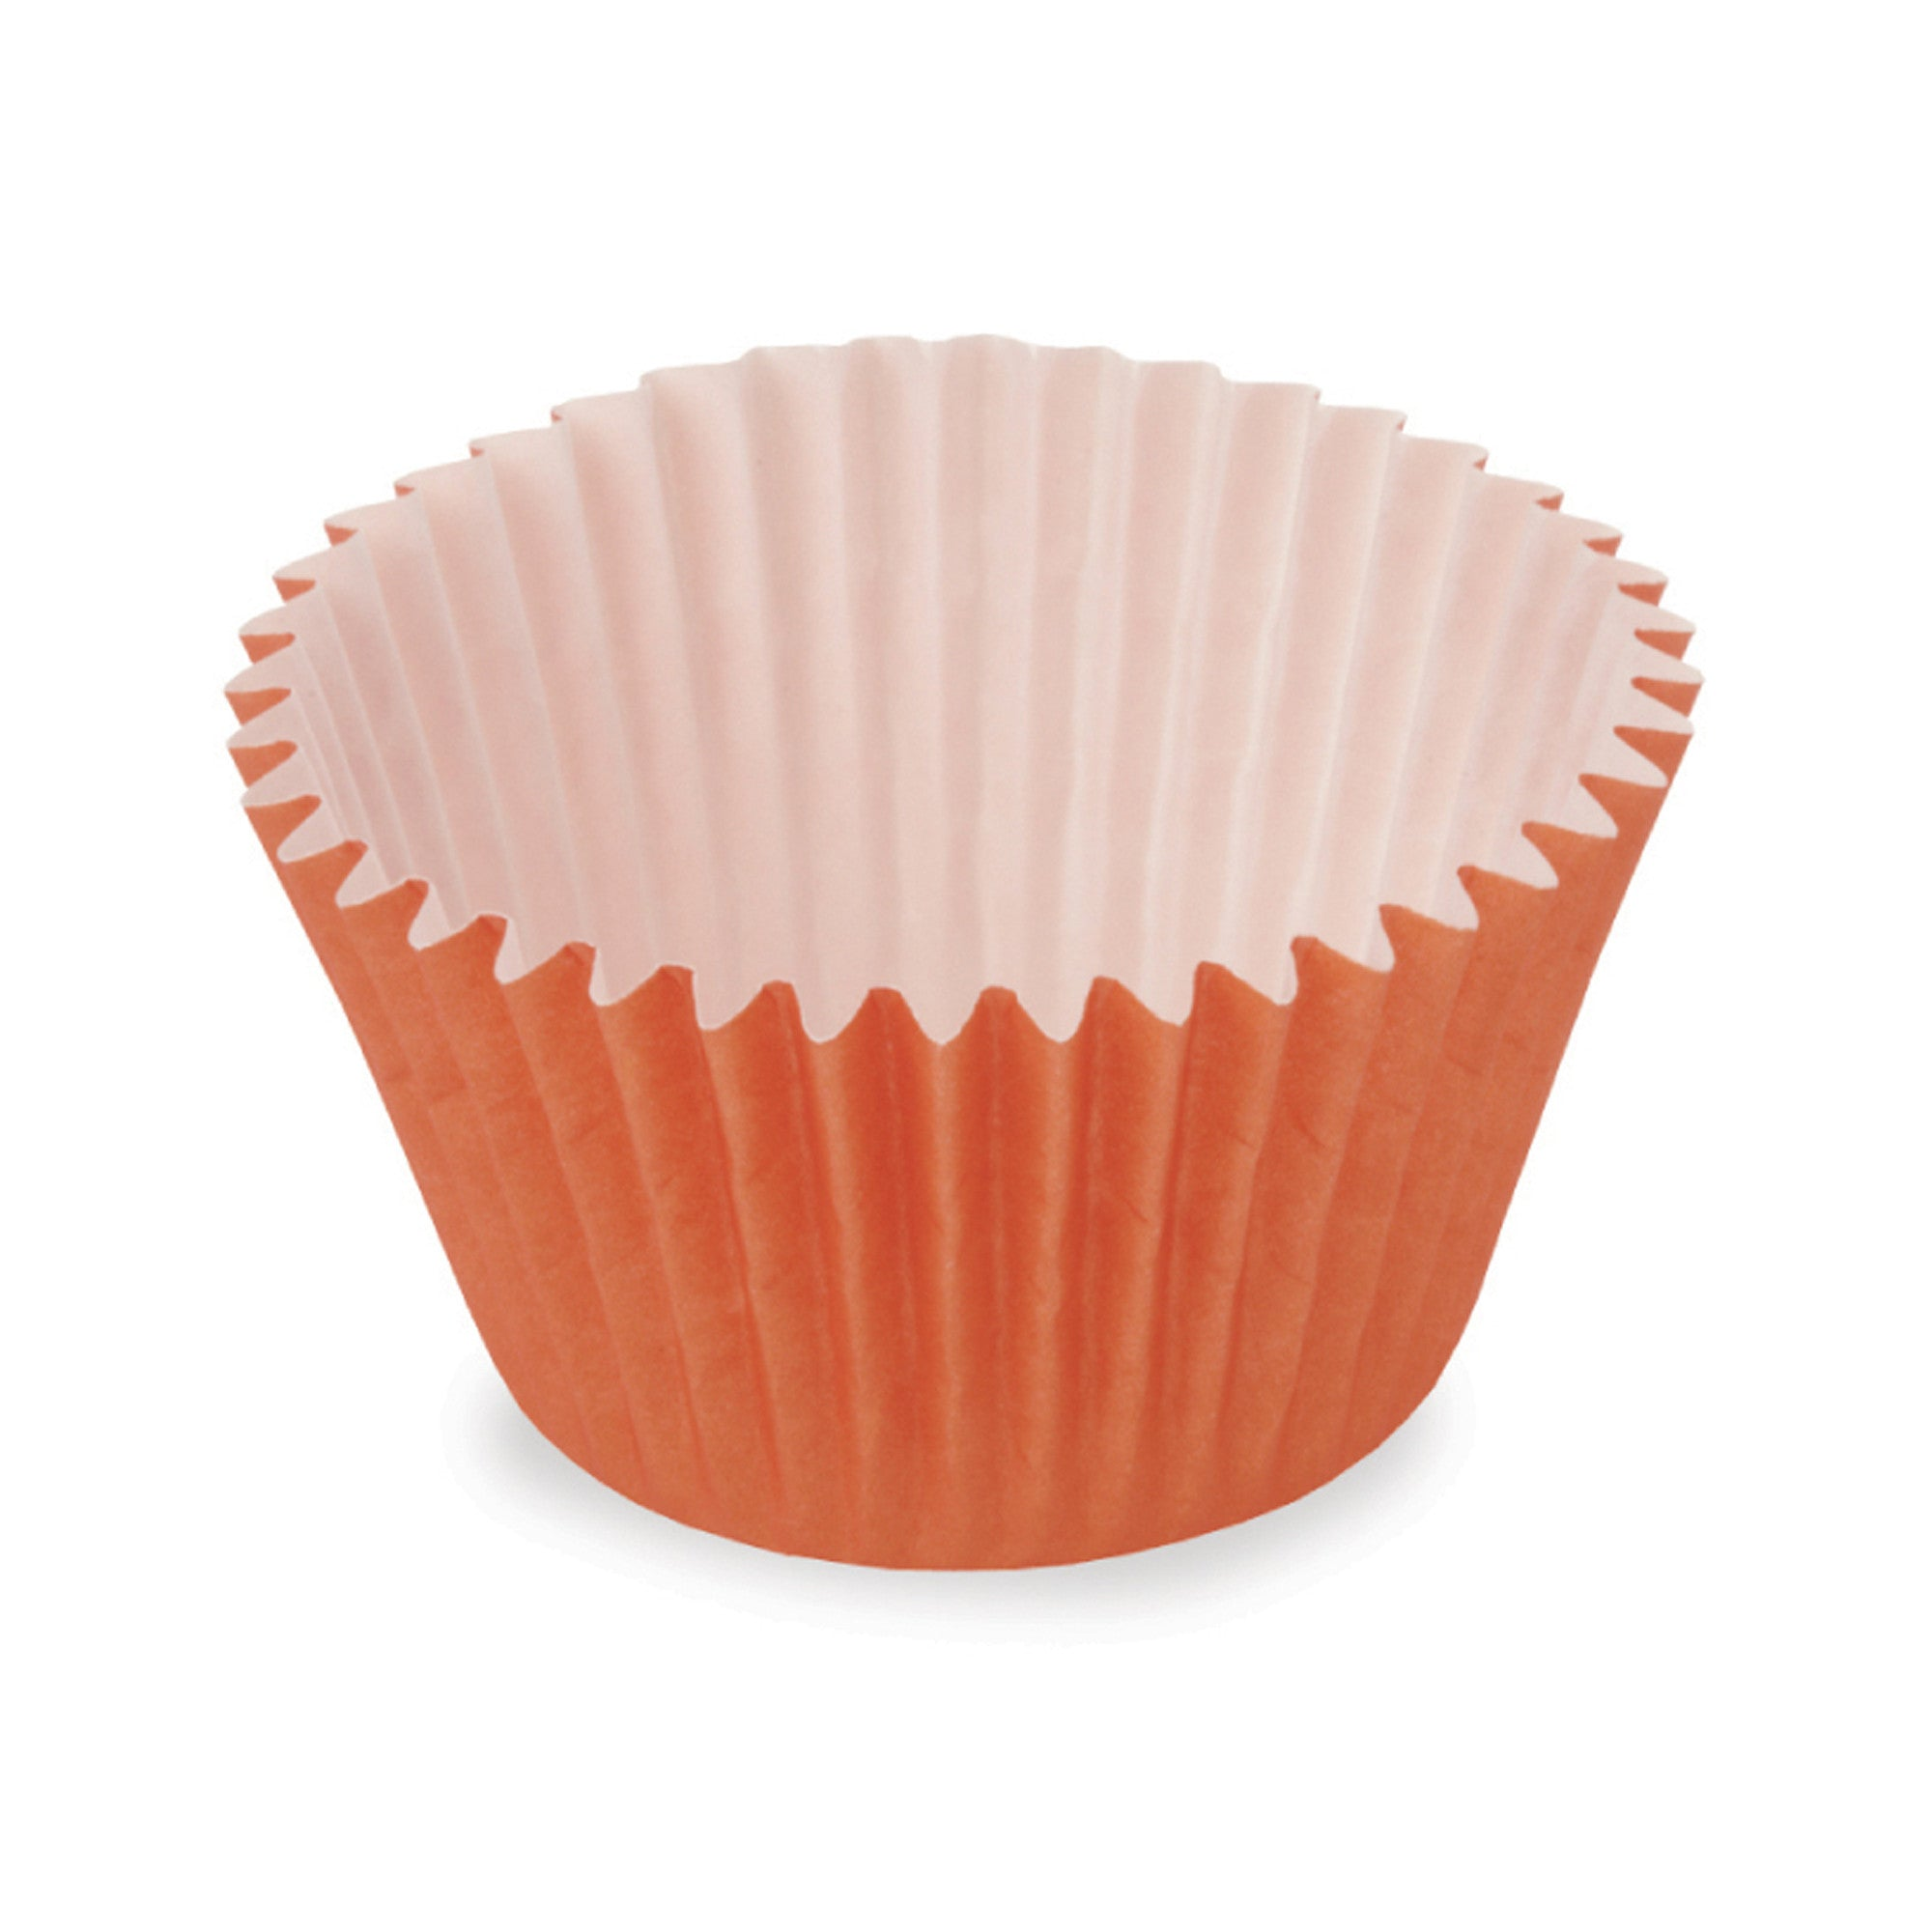 Cupcake Baking Cups, SWC254 - Welcome Home Brands